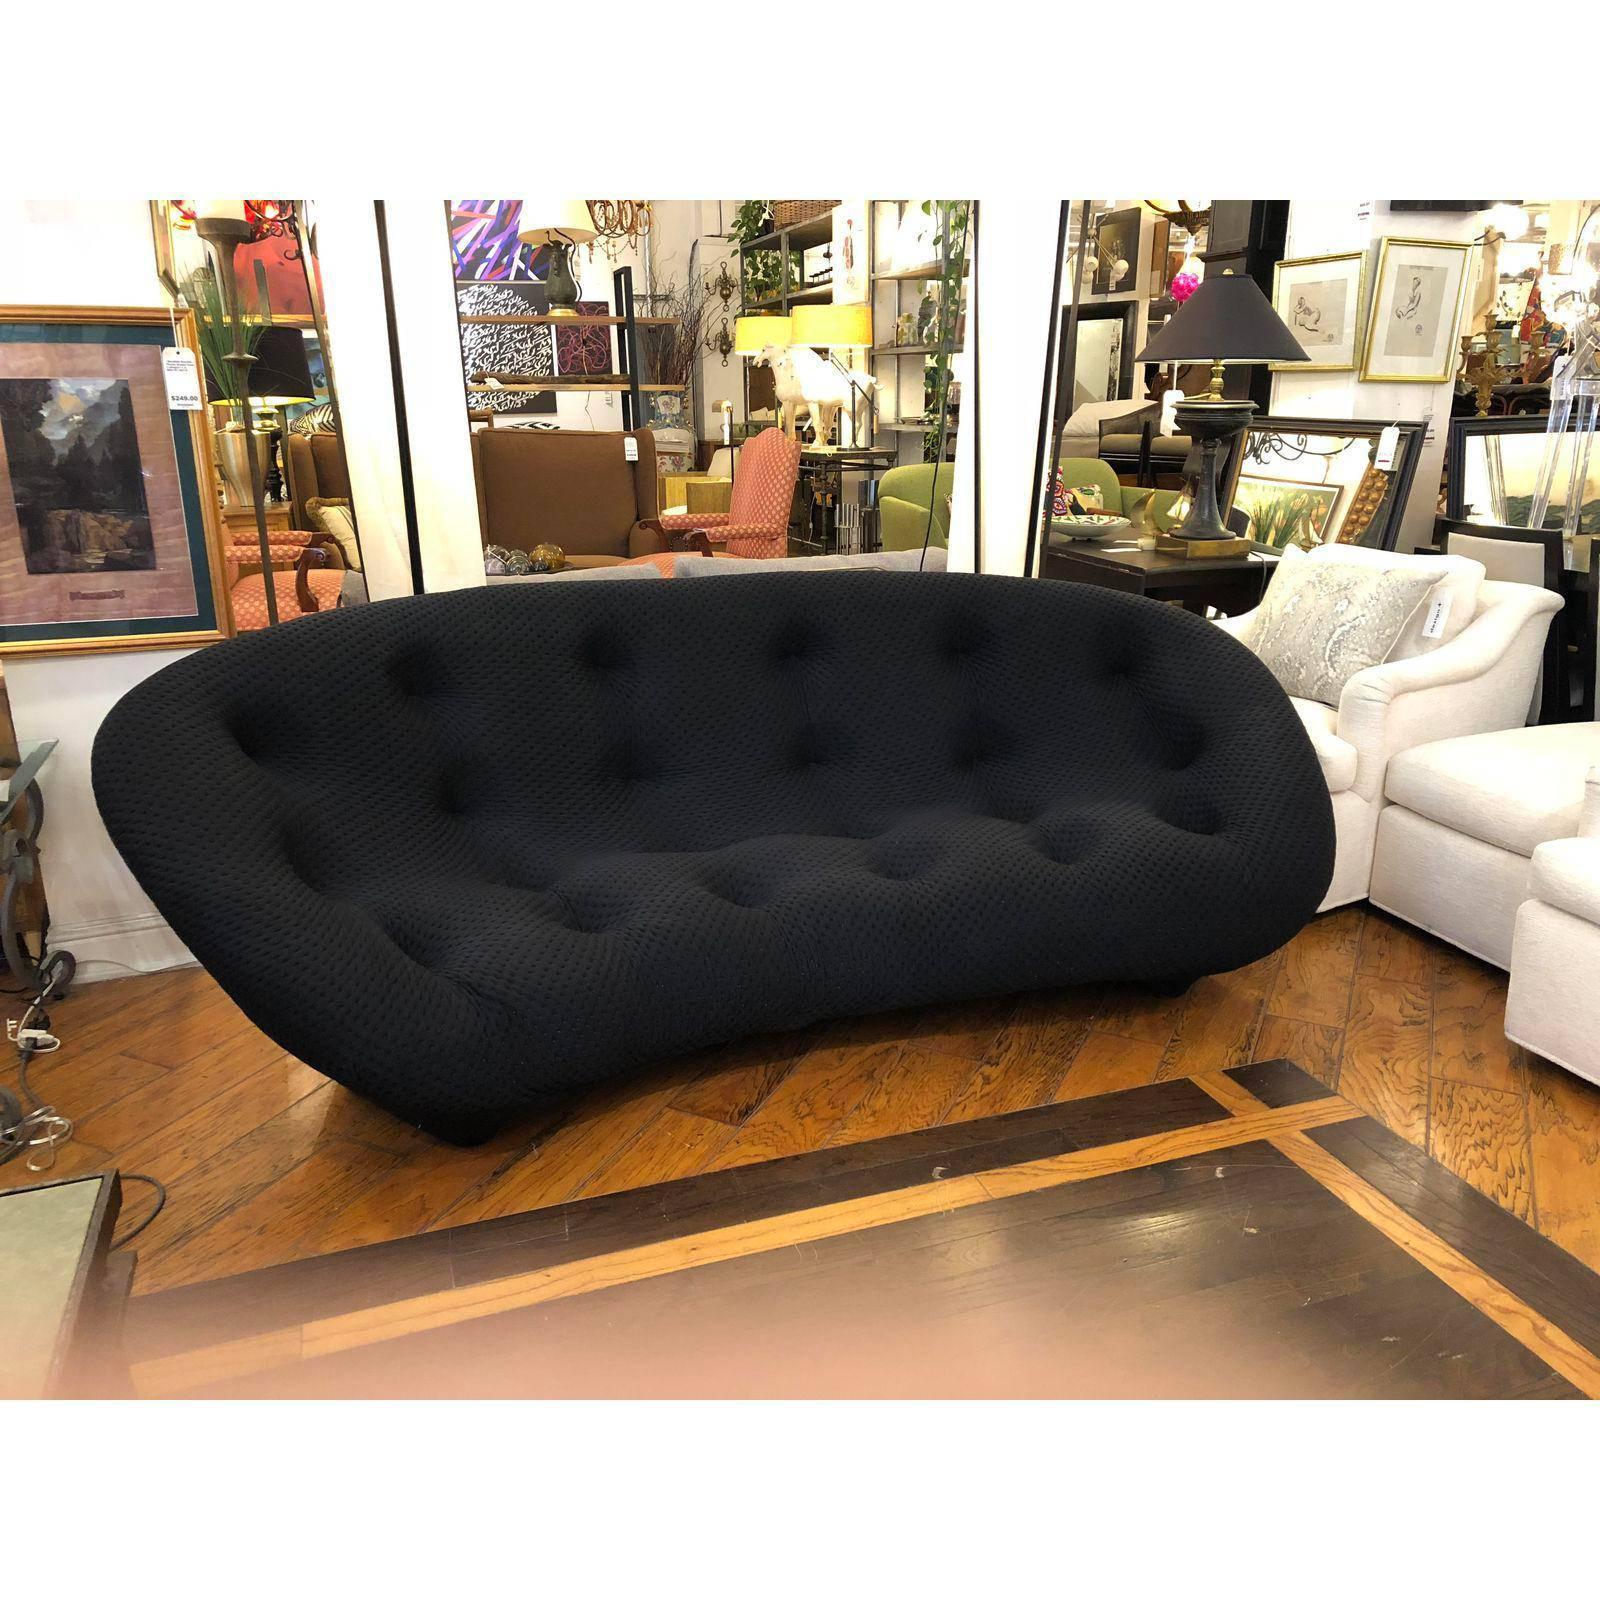 Ligne Roset Ploum Sofa at 1stdibs